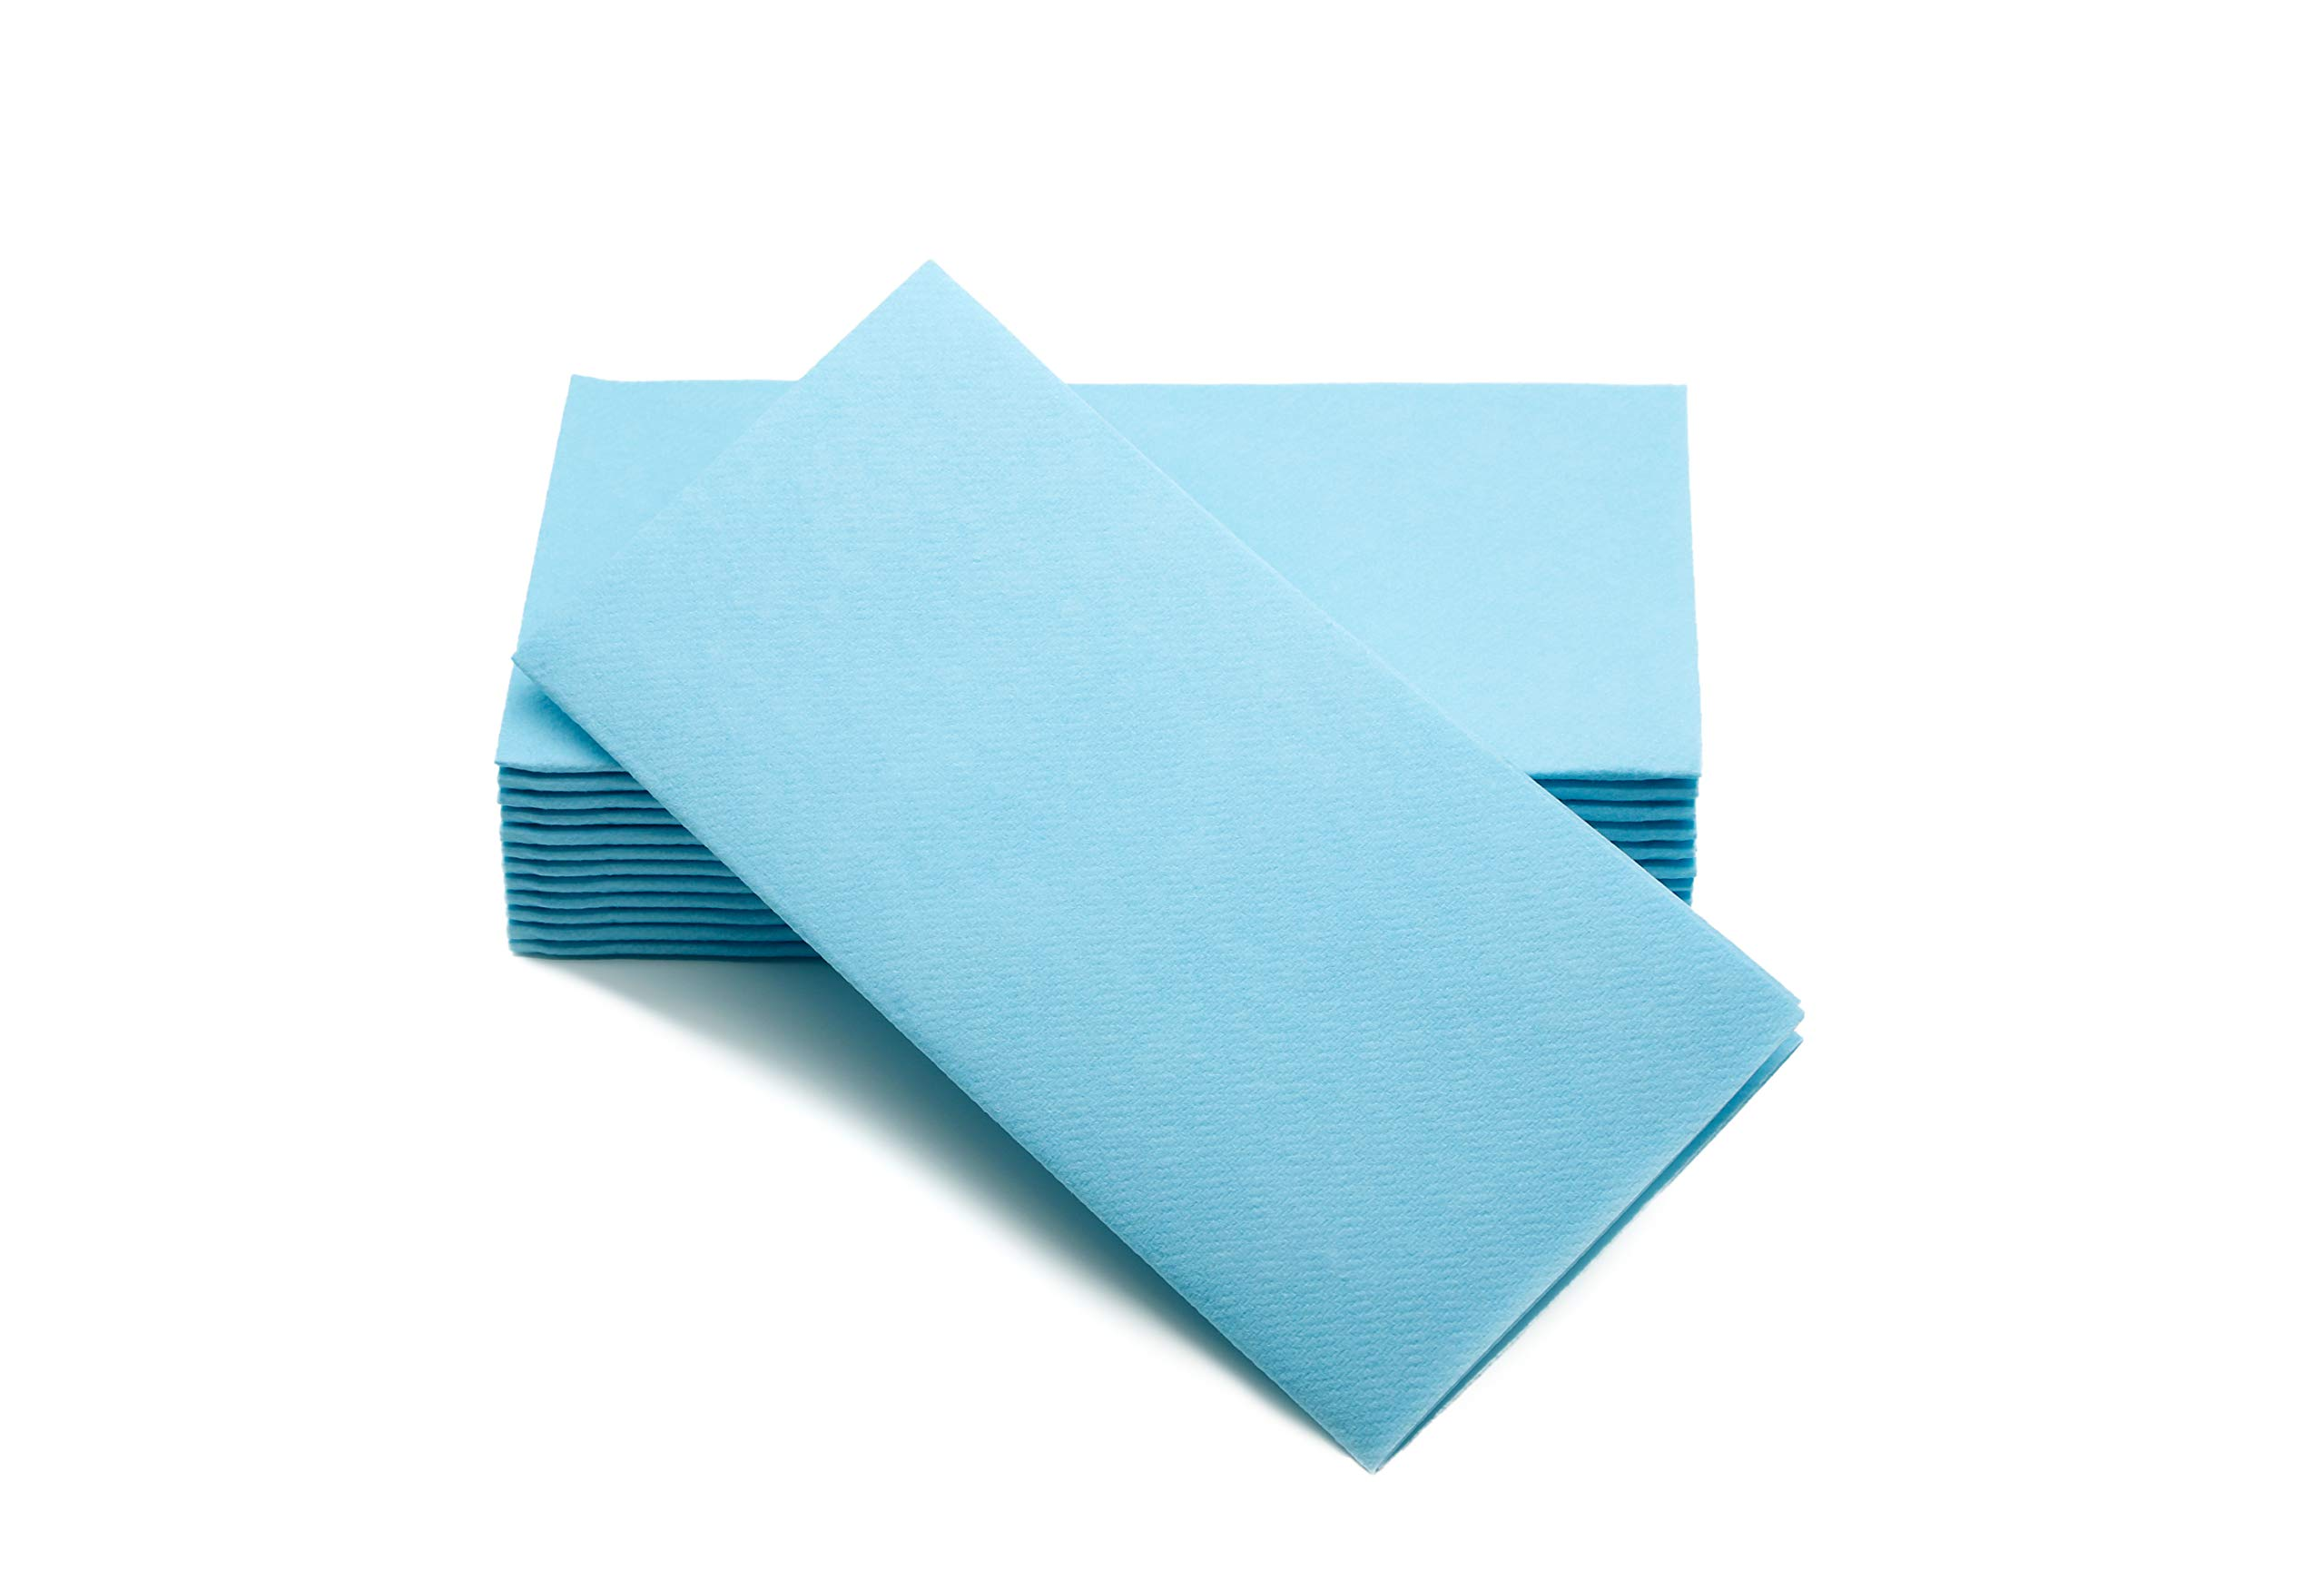 """Simulinen Colored Napkins - Decorative Cloth Like & Disposable, Dinner Napkins - Sky Blue - Soft, Absorbent & Durable - 16""""x16"""" - Great for Any Occasion! - Box of 50"""